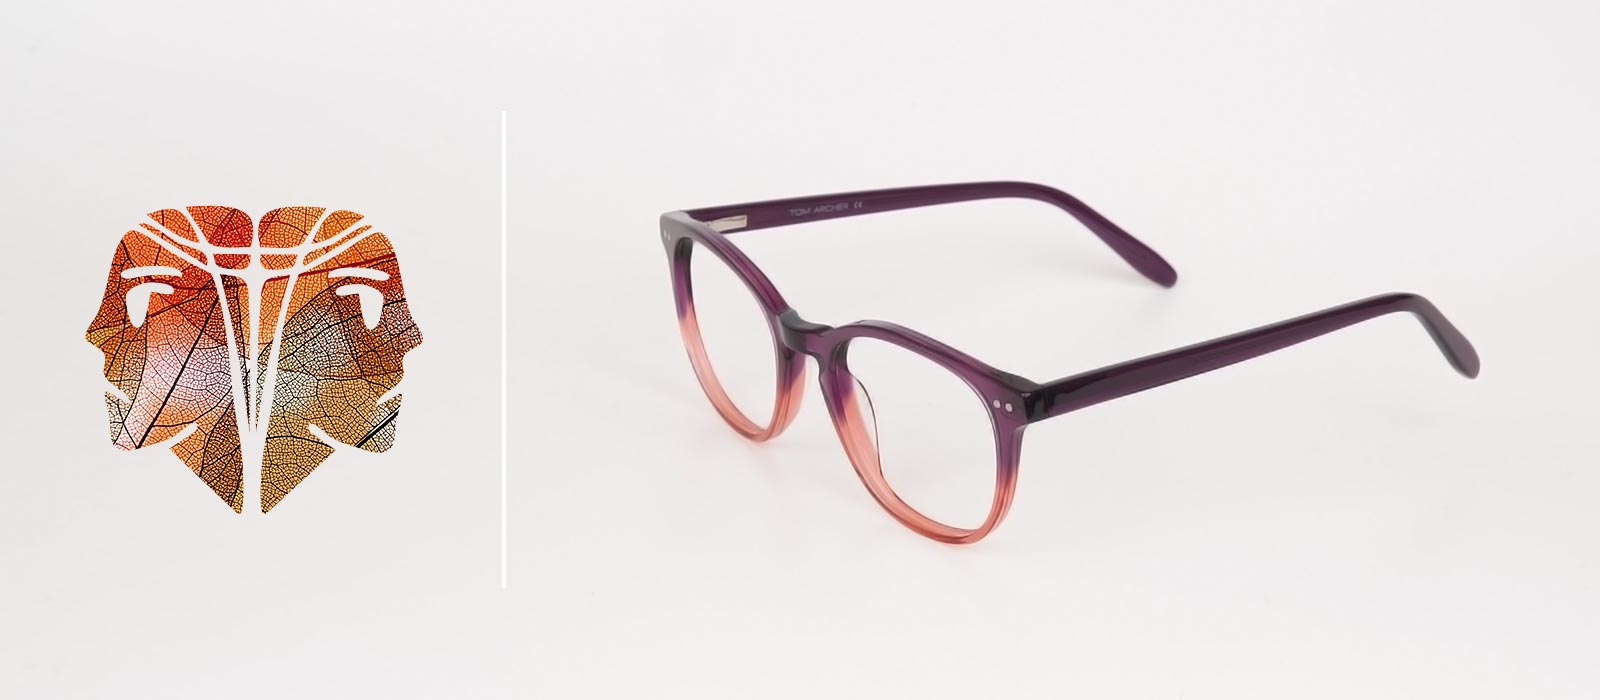 eyewear trend 2019 according gemini zodiac sign